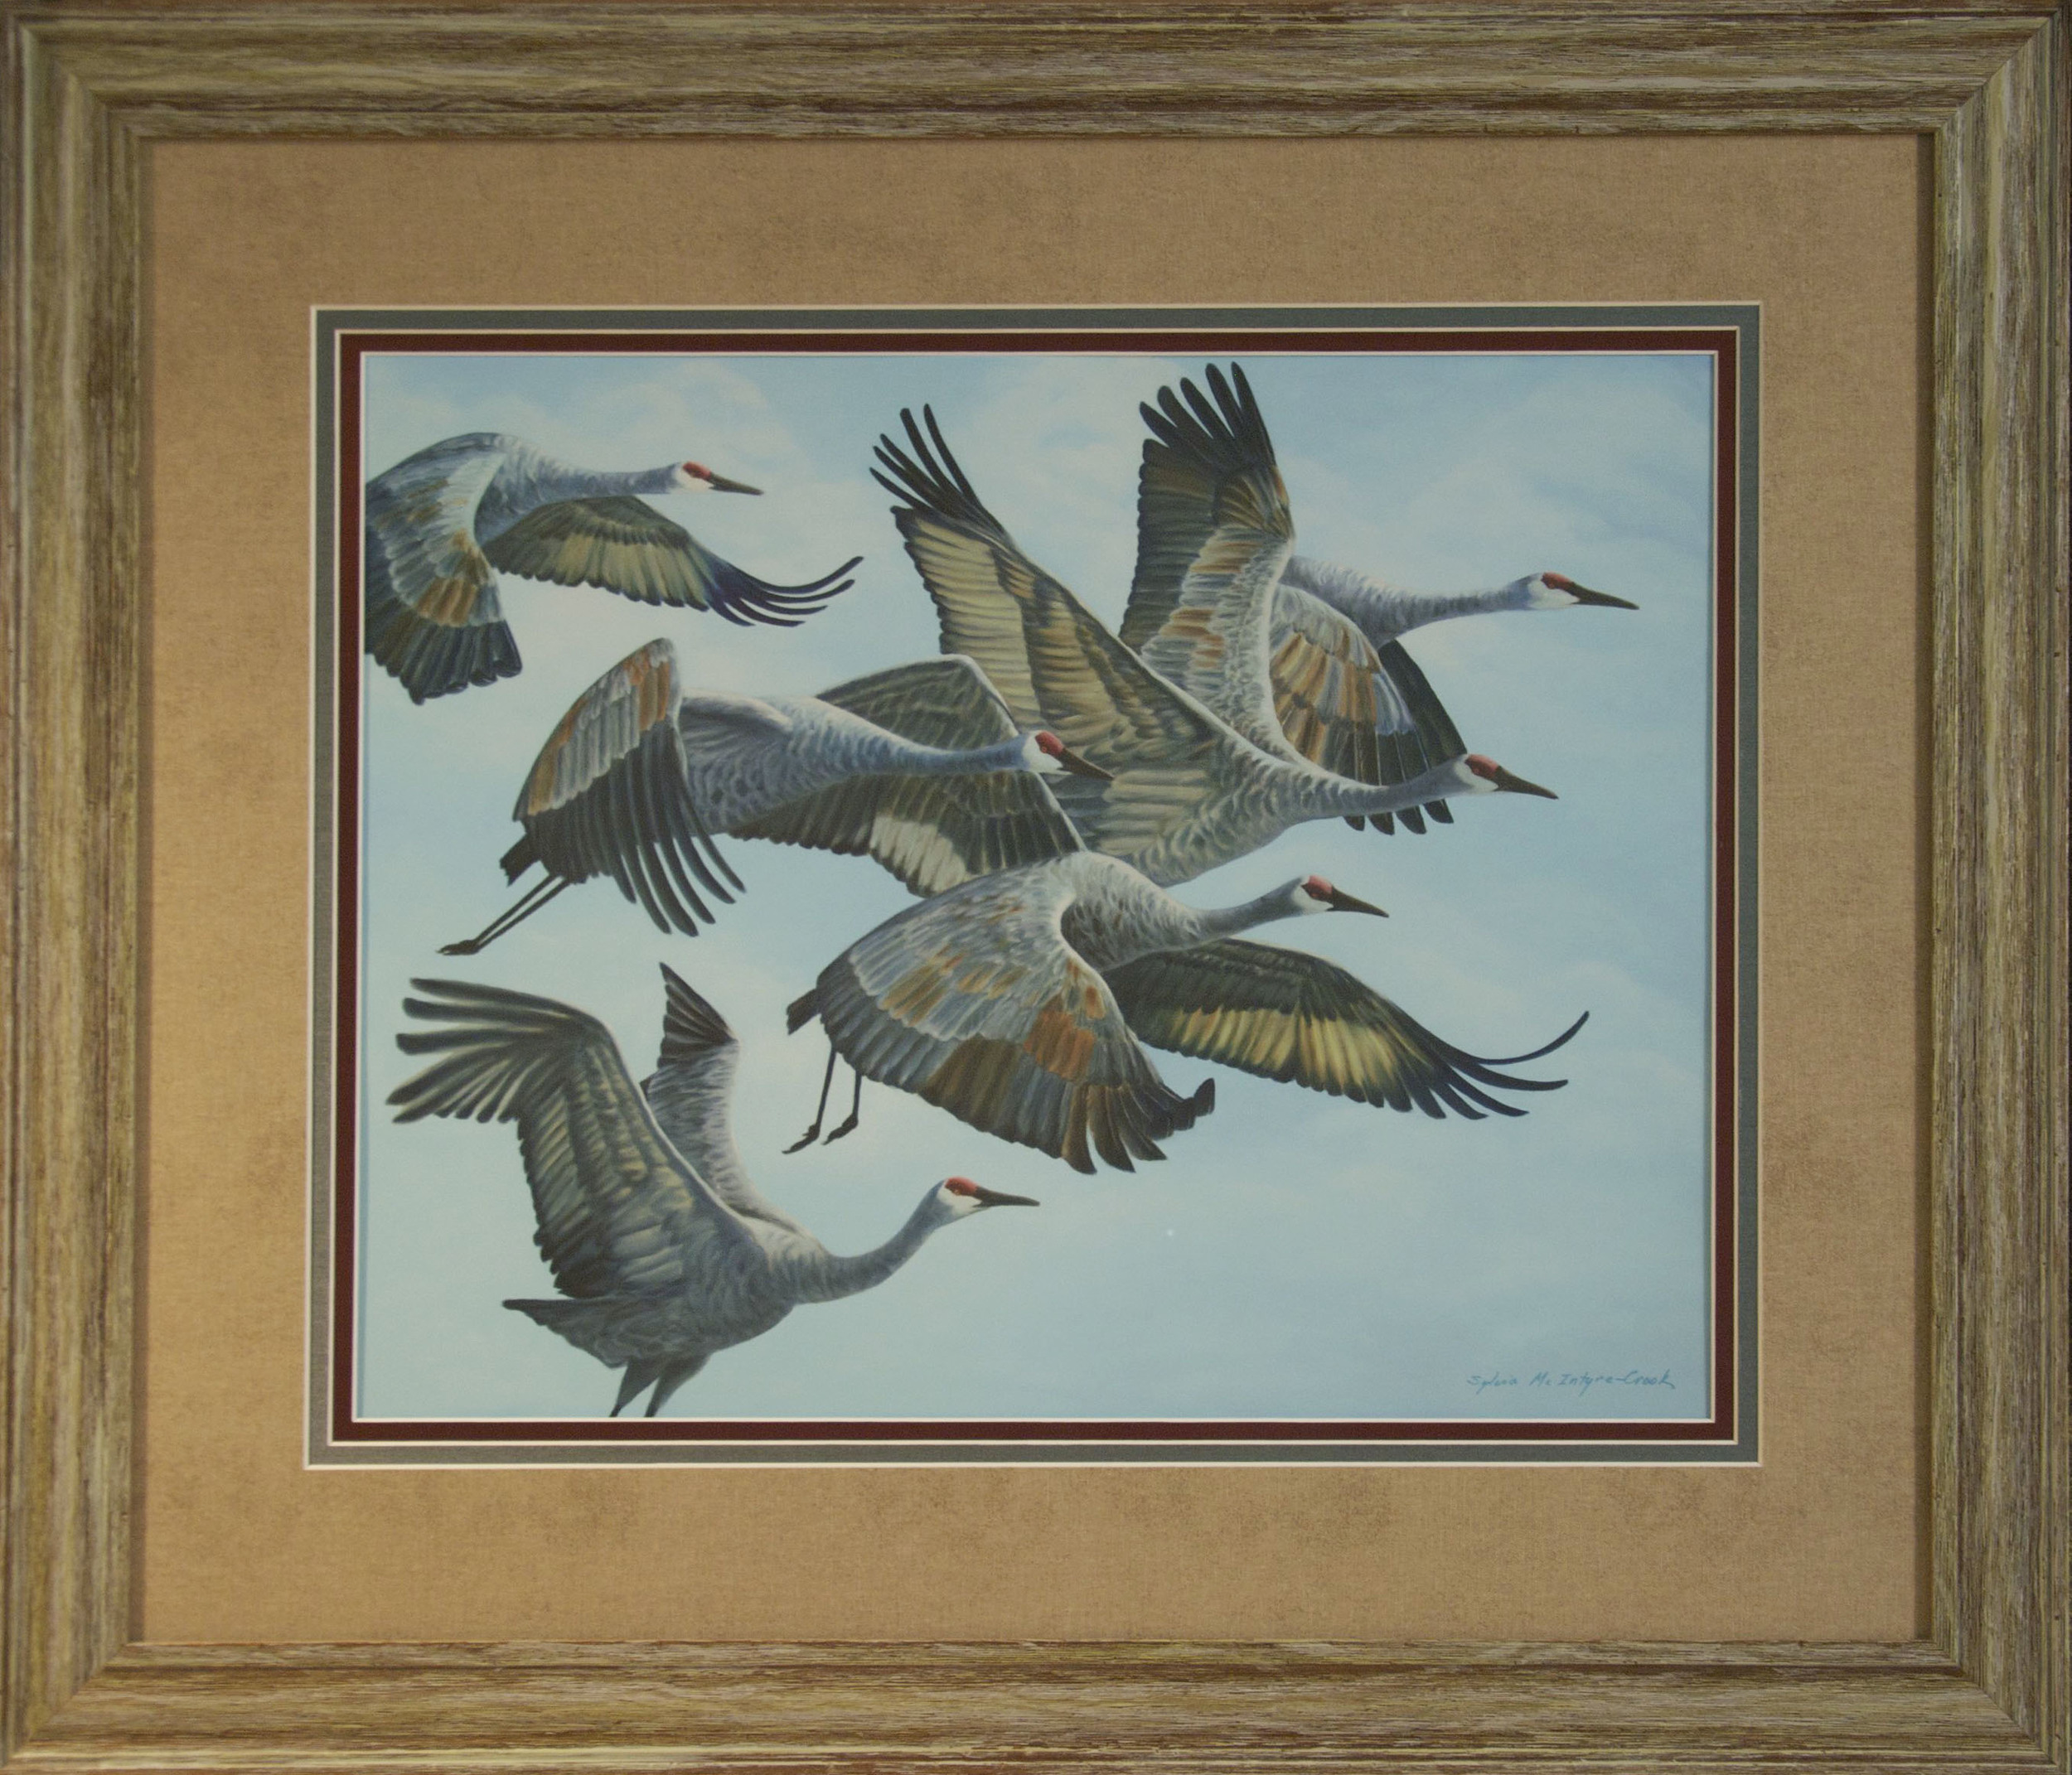 """Limited Edition Print #1 of 30: Sandhill Cranes in Flock, Aloft II  print: 18""""x23""""; frame: 29.5""""x34""""; Ultrachrome HDR ink  from original oil on canvass 'Sandhill Cranes in Flock, Aloft II; 60 x 48  $550.00"""